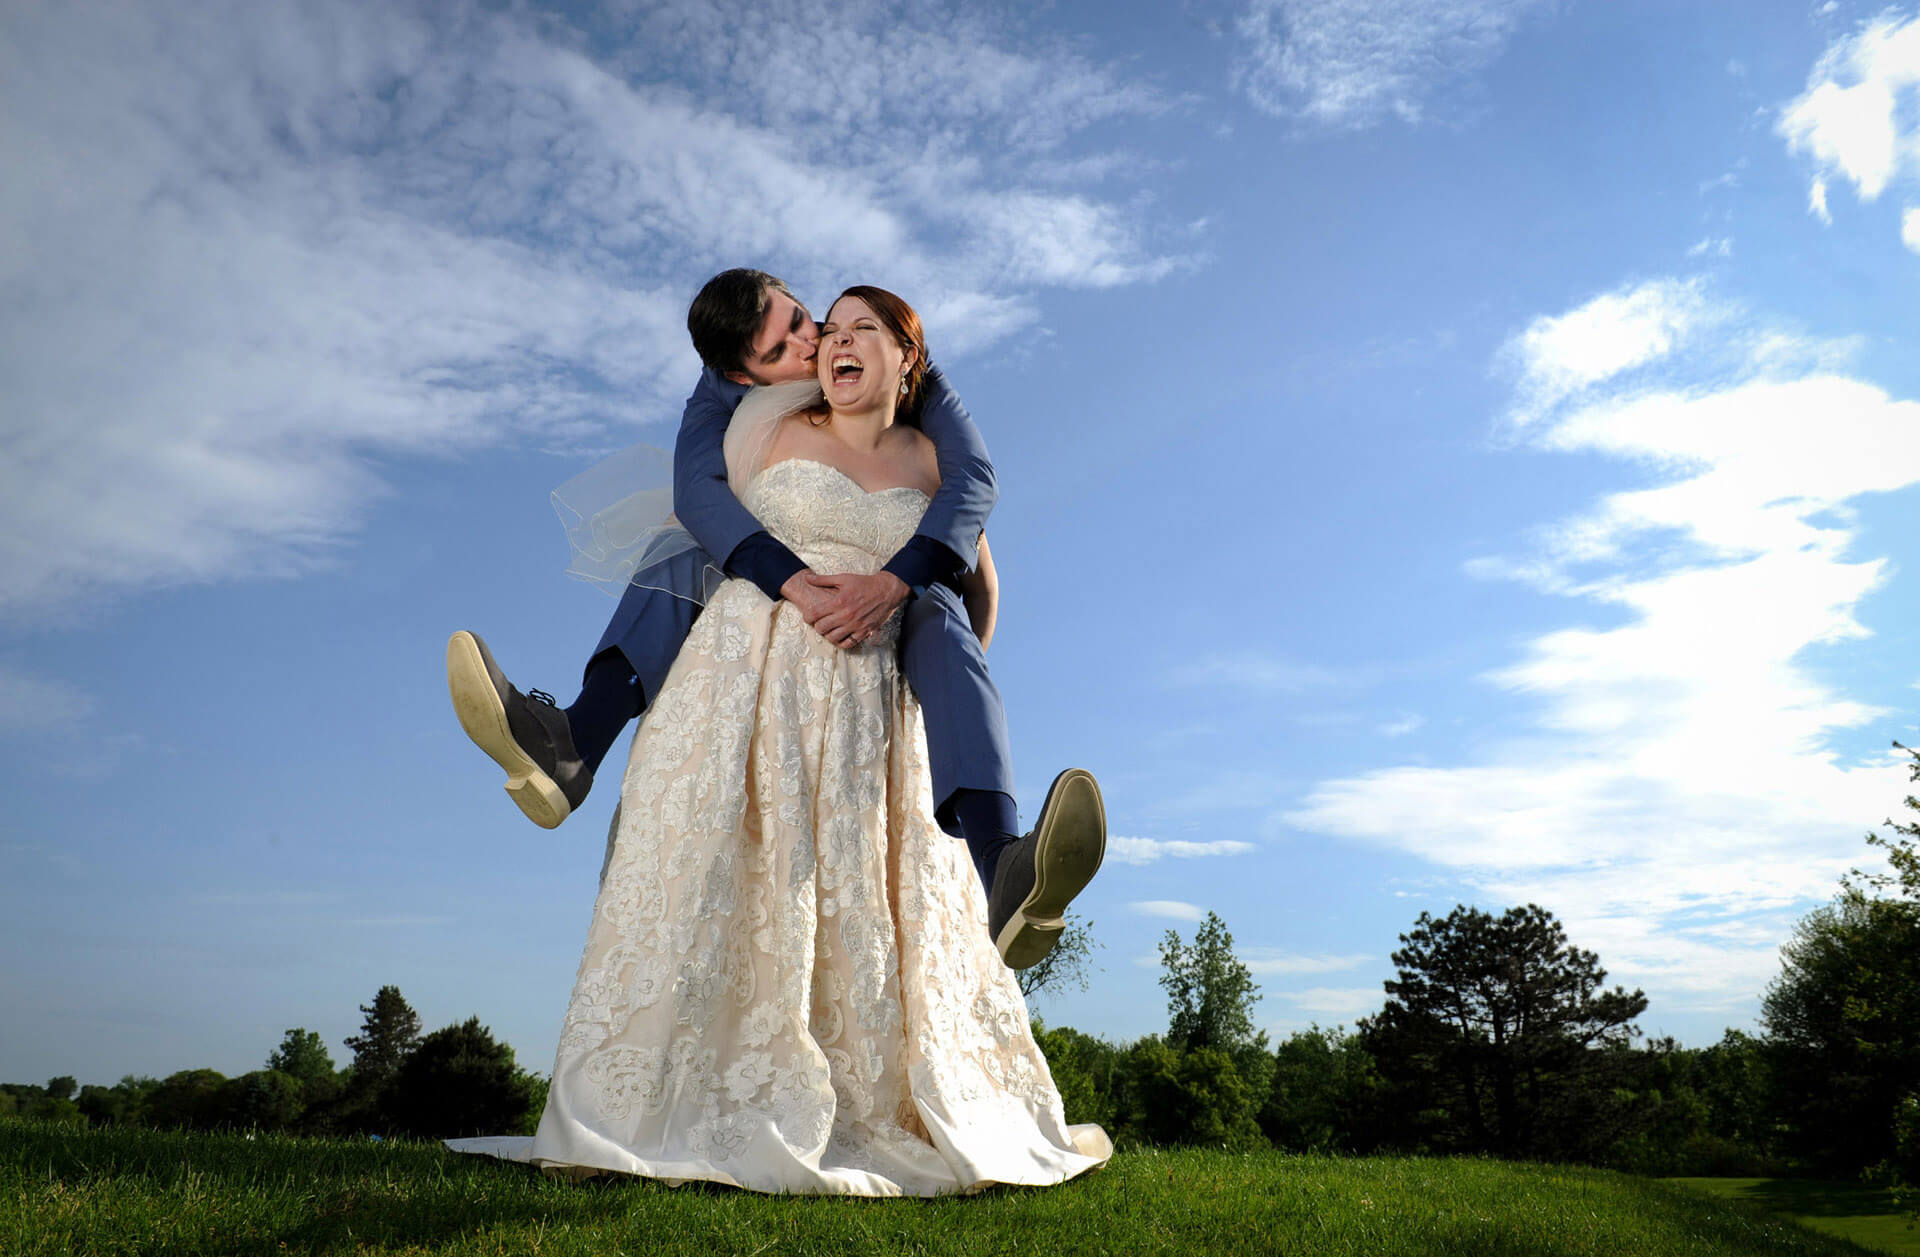 Fun, candid wedding photojournalism is what this award winning photojournalist brings to shooting Ann Arbor weddings.